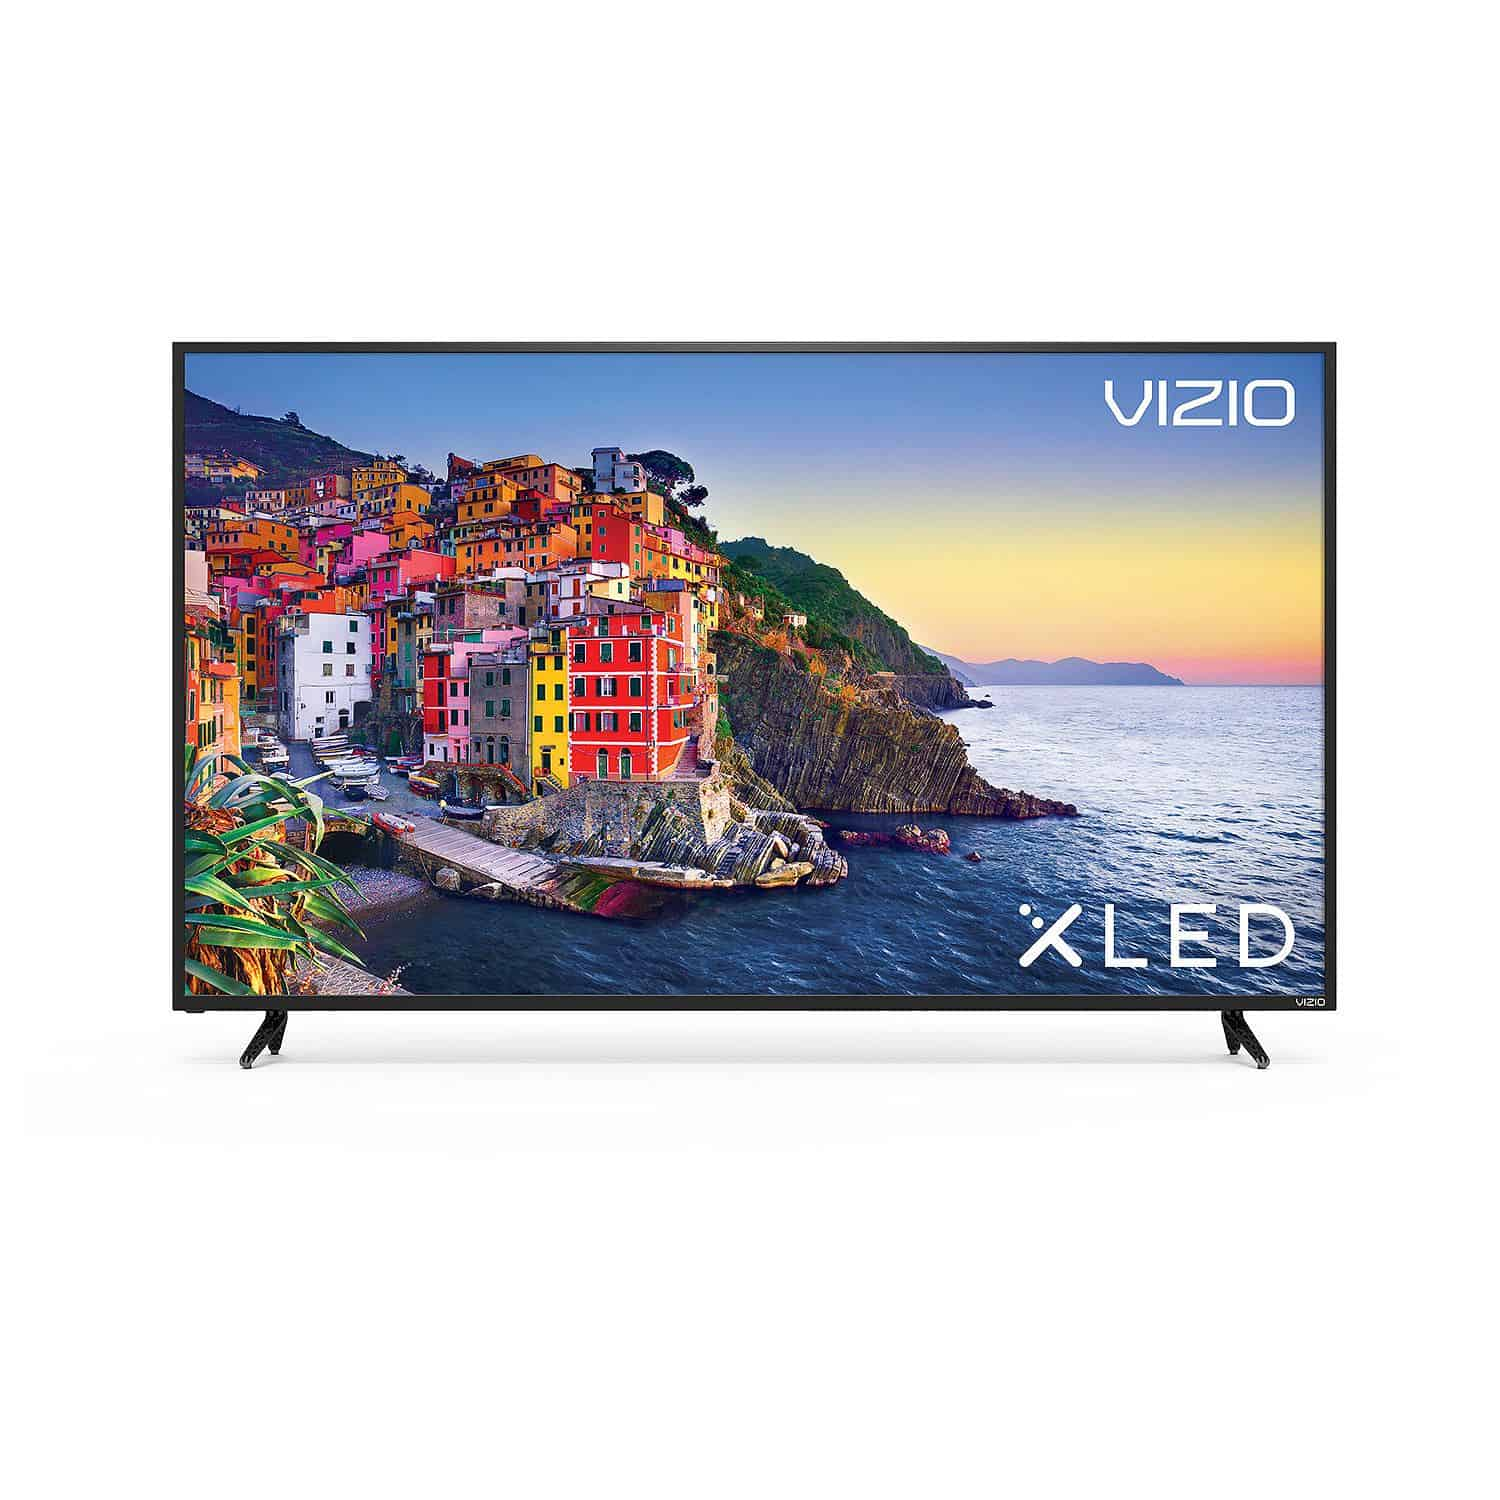 VIZIO SmartCast E-Series 75-inch Ultra HD HDR TV with Chromecast Built-in